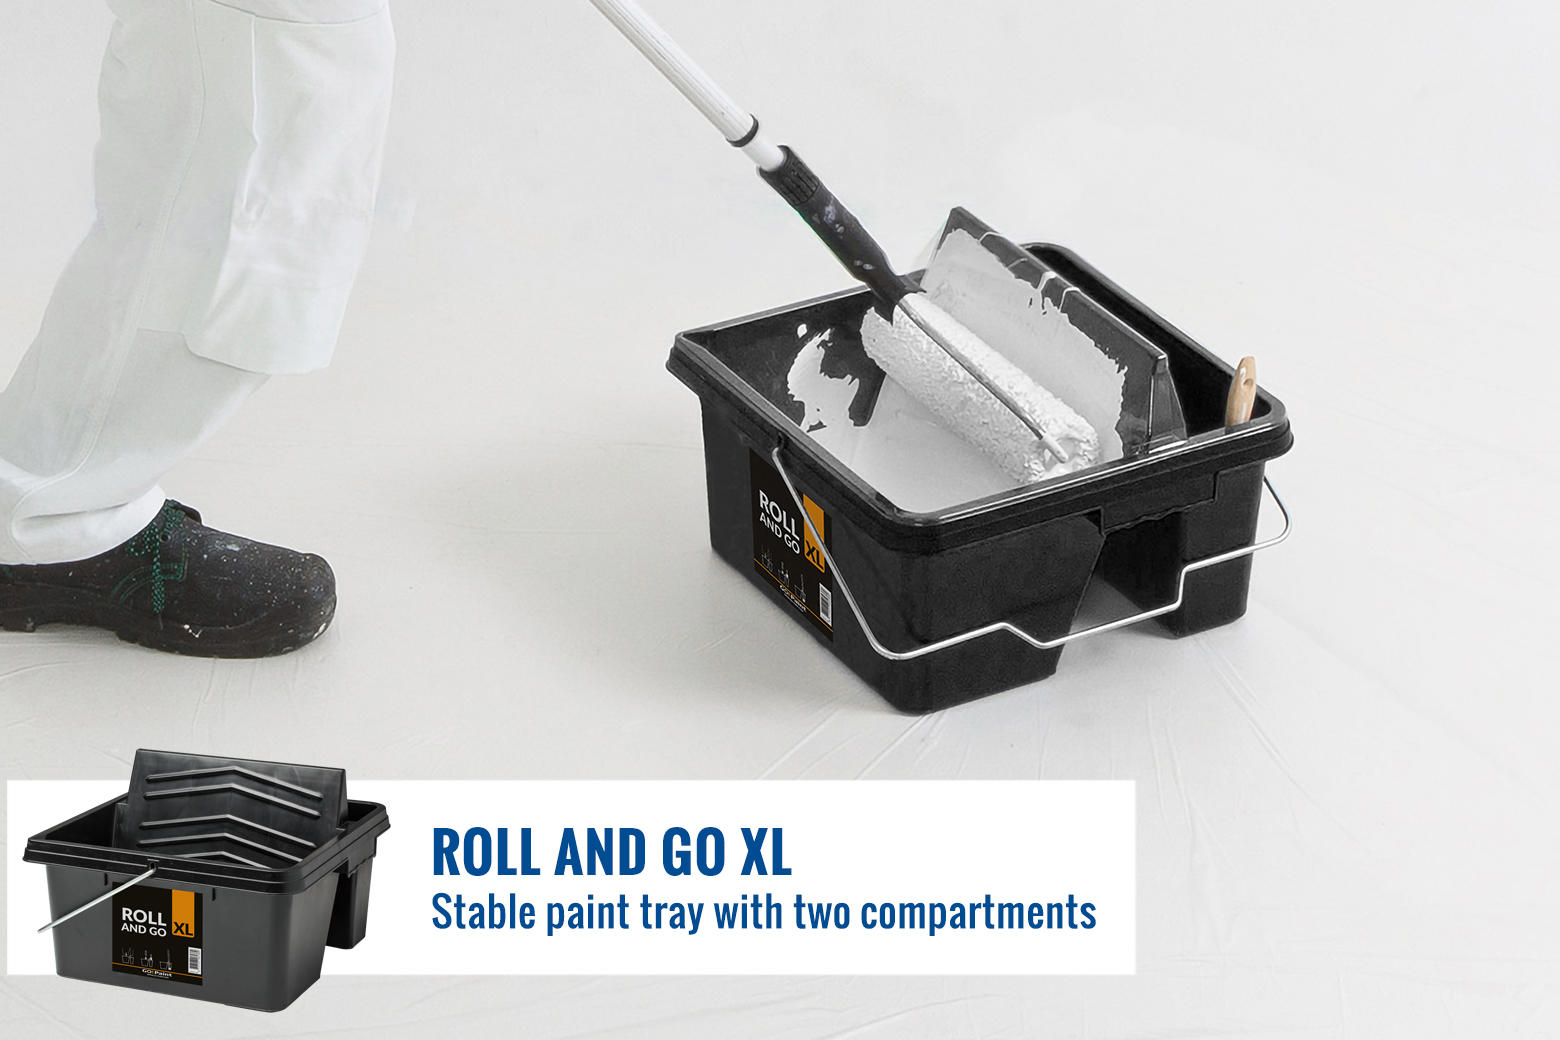 Excellent for painting walls, floors and ceilings with a telescope pole.